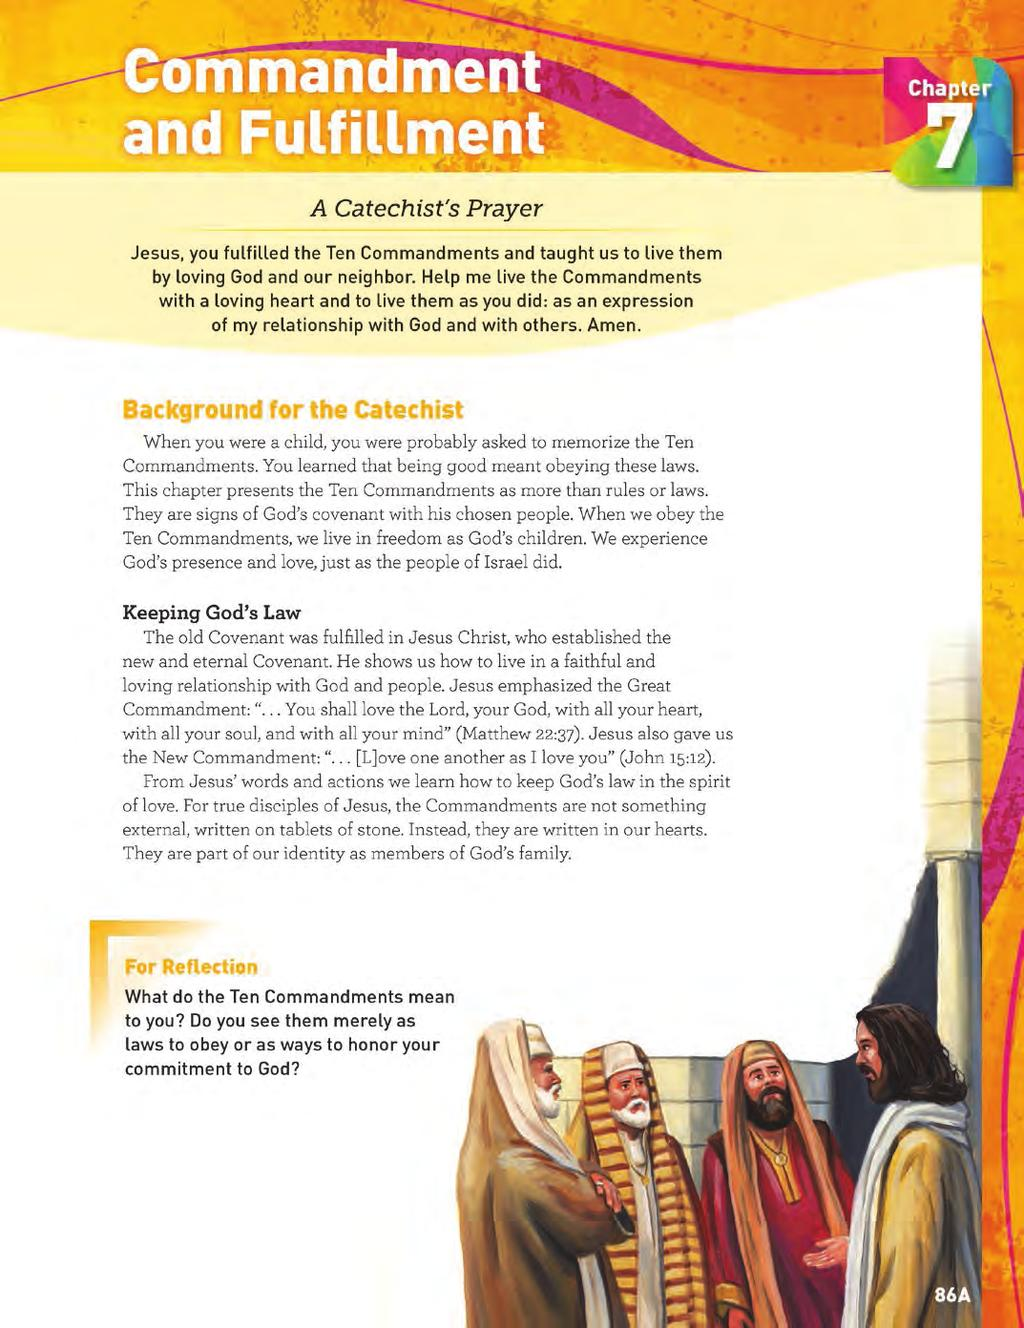 Grade 6 Catechist Guide Background Page CATECHIST BACKGROUND The Catechist Background page provides background